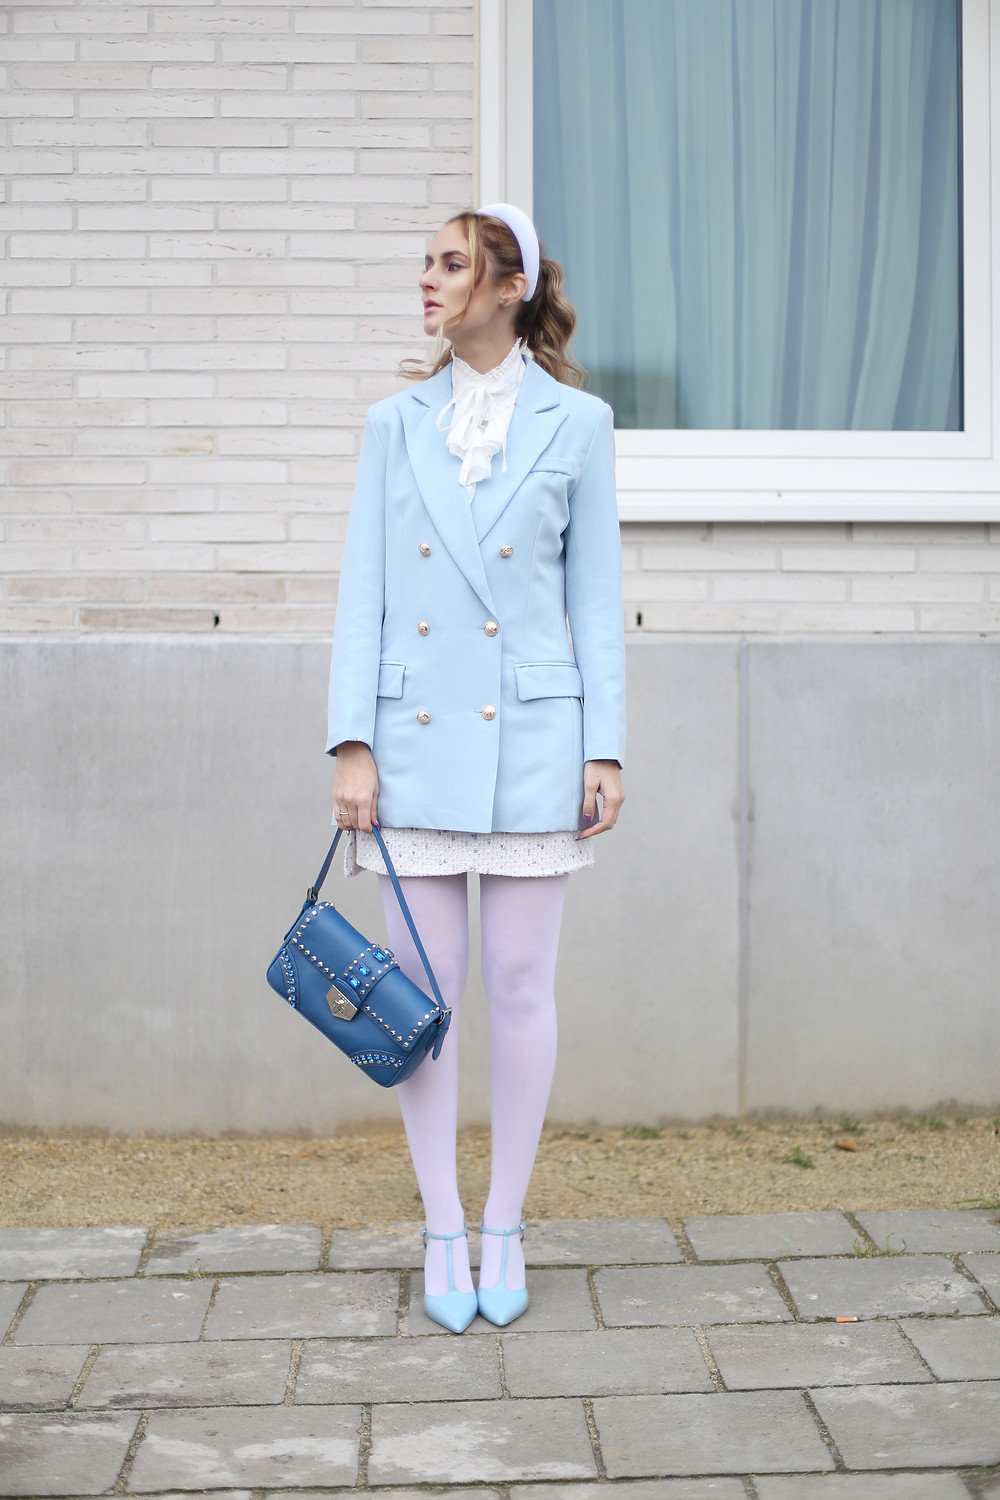 light-blue-and-white-outfit.jpg